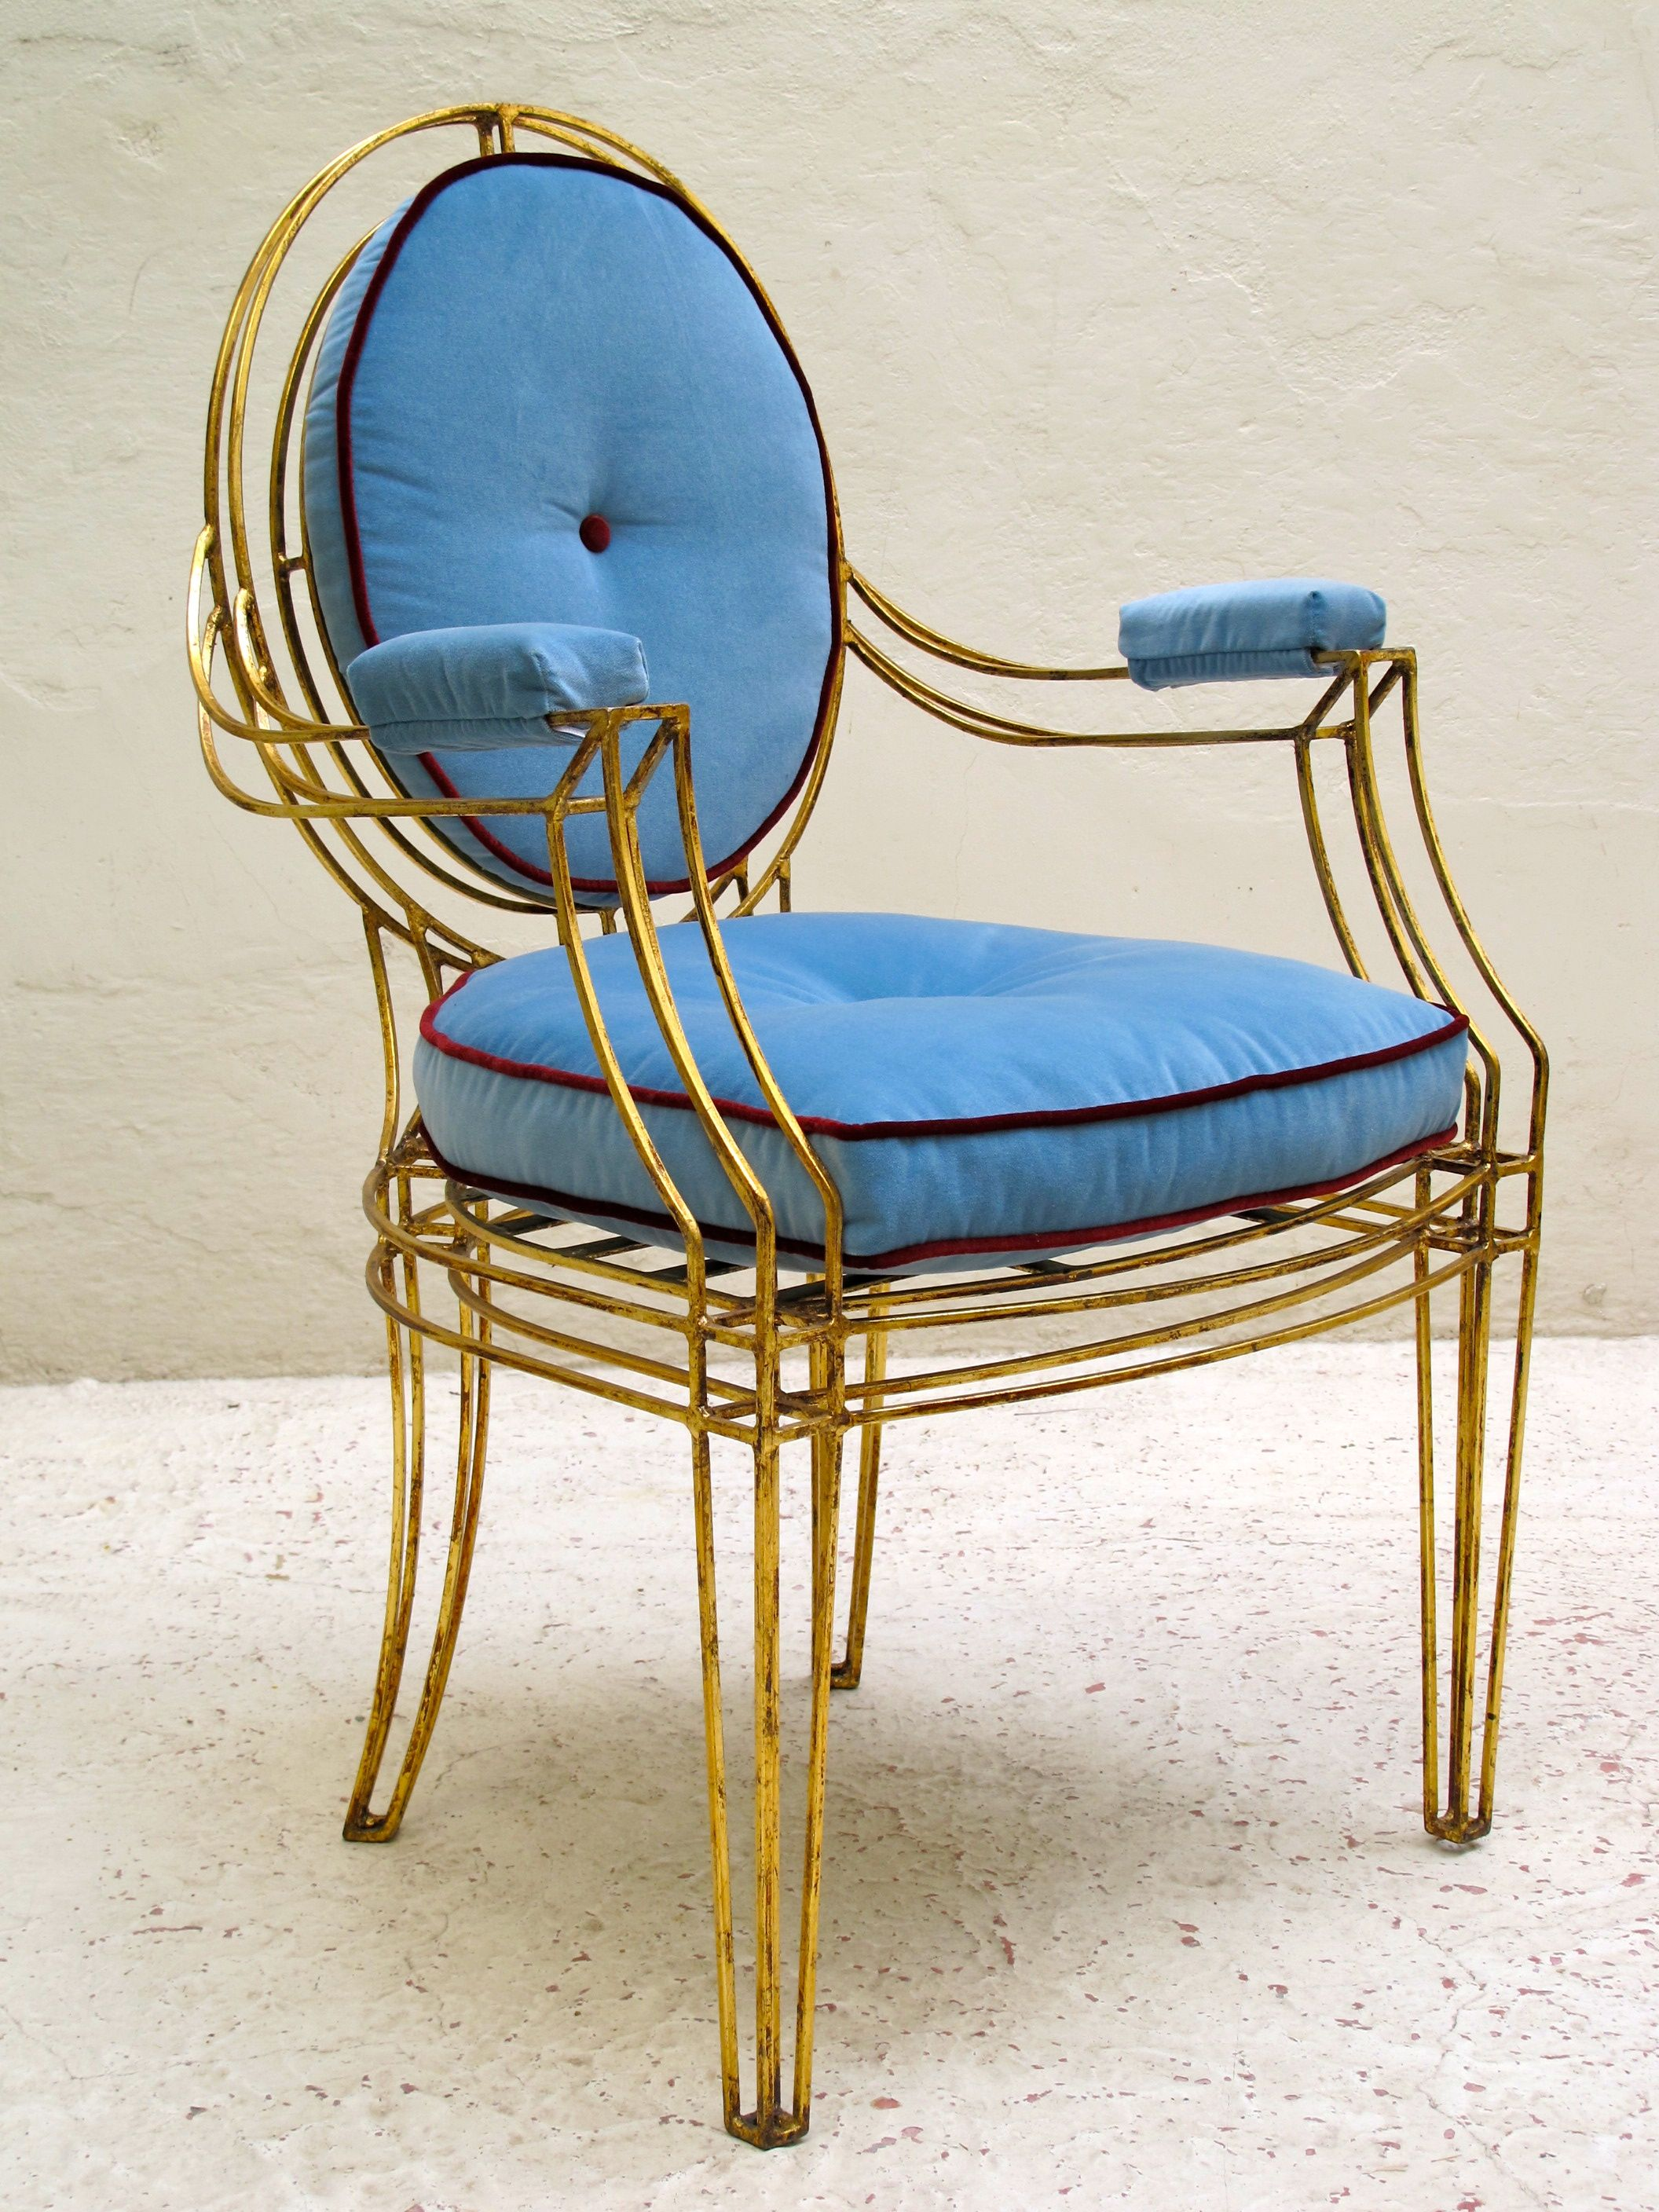 Etonnant Casamidy Opera Chair #furniture #chair #casamidy